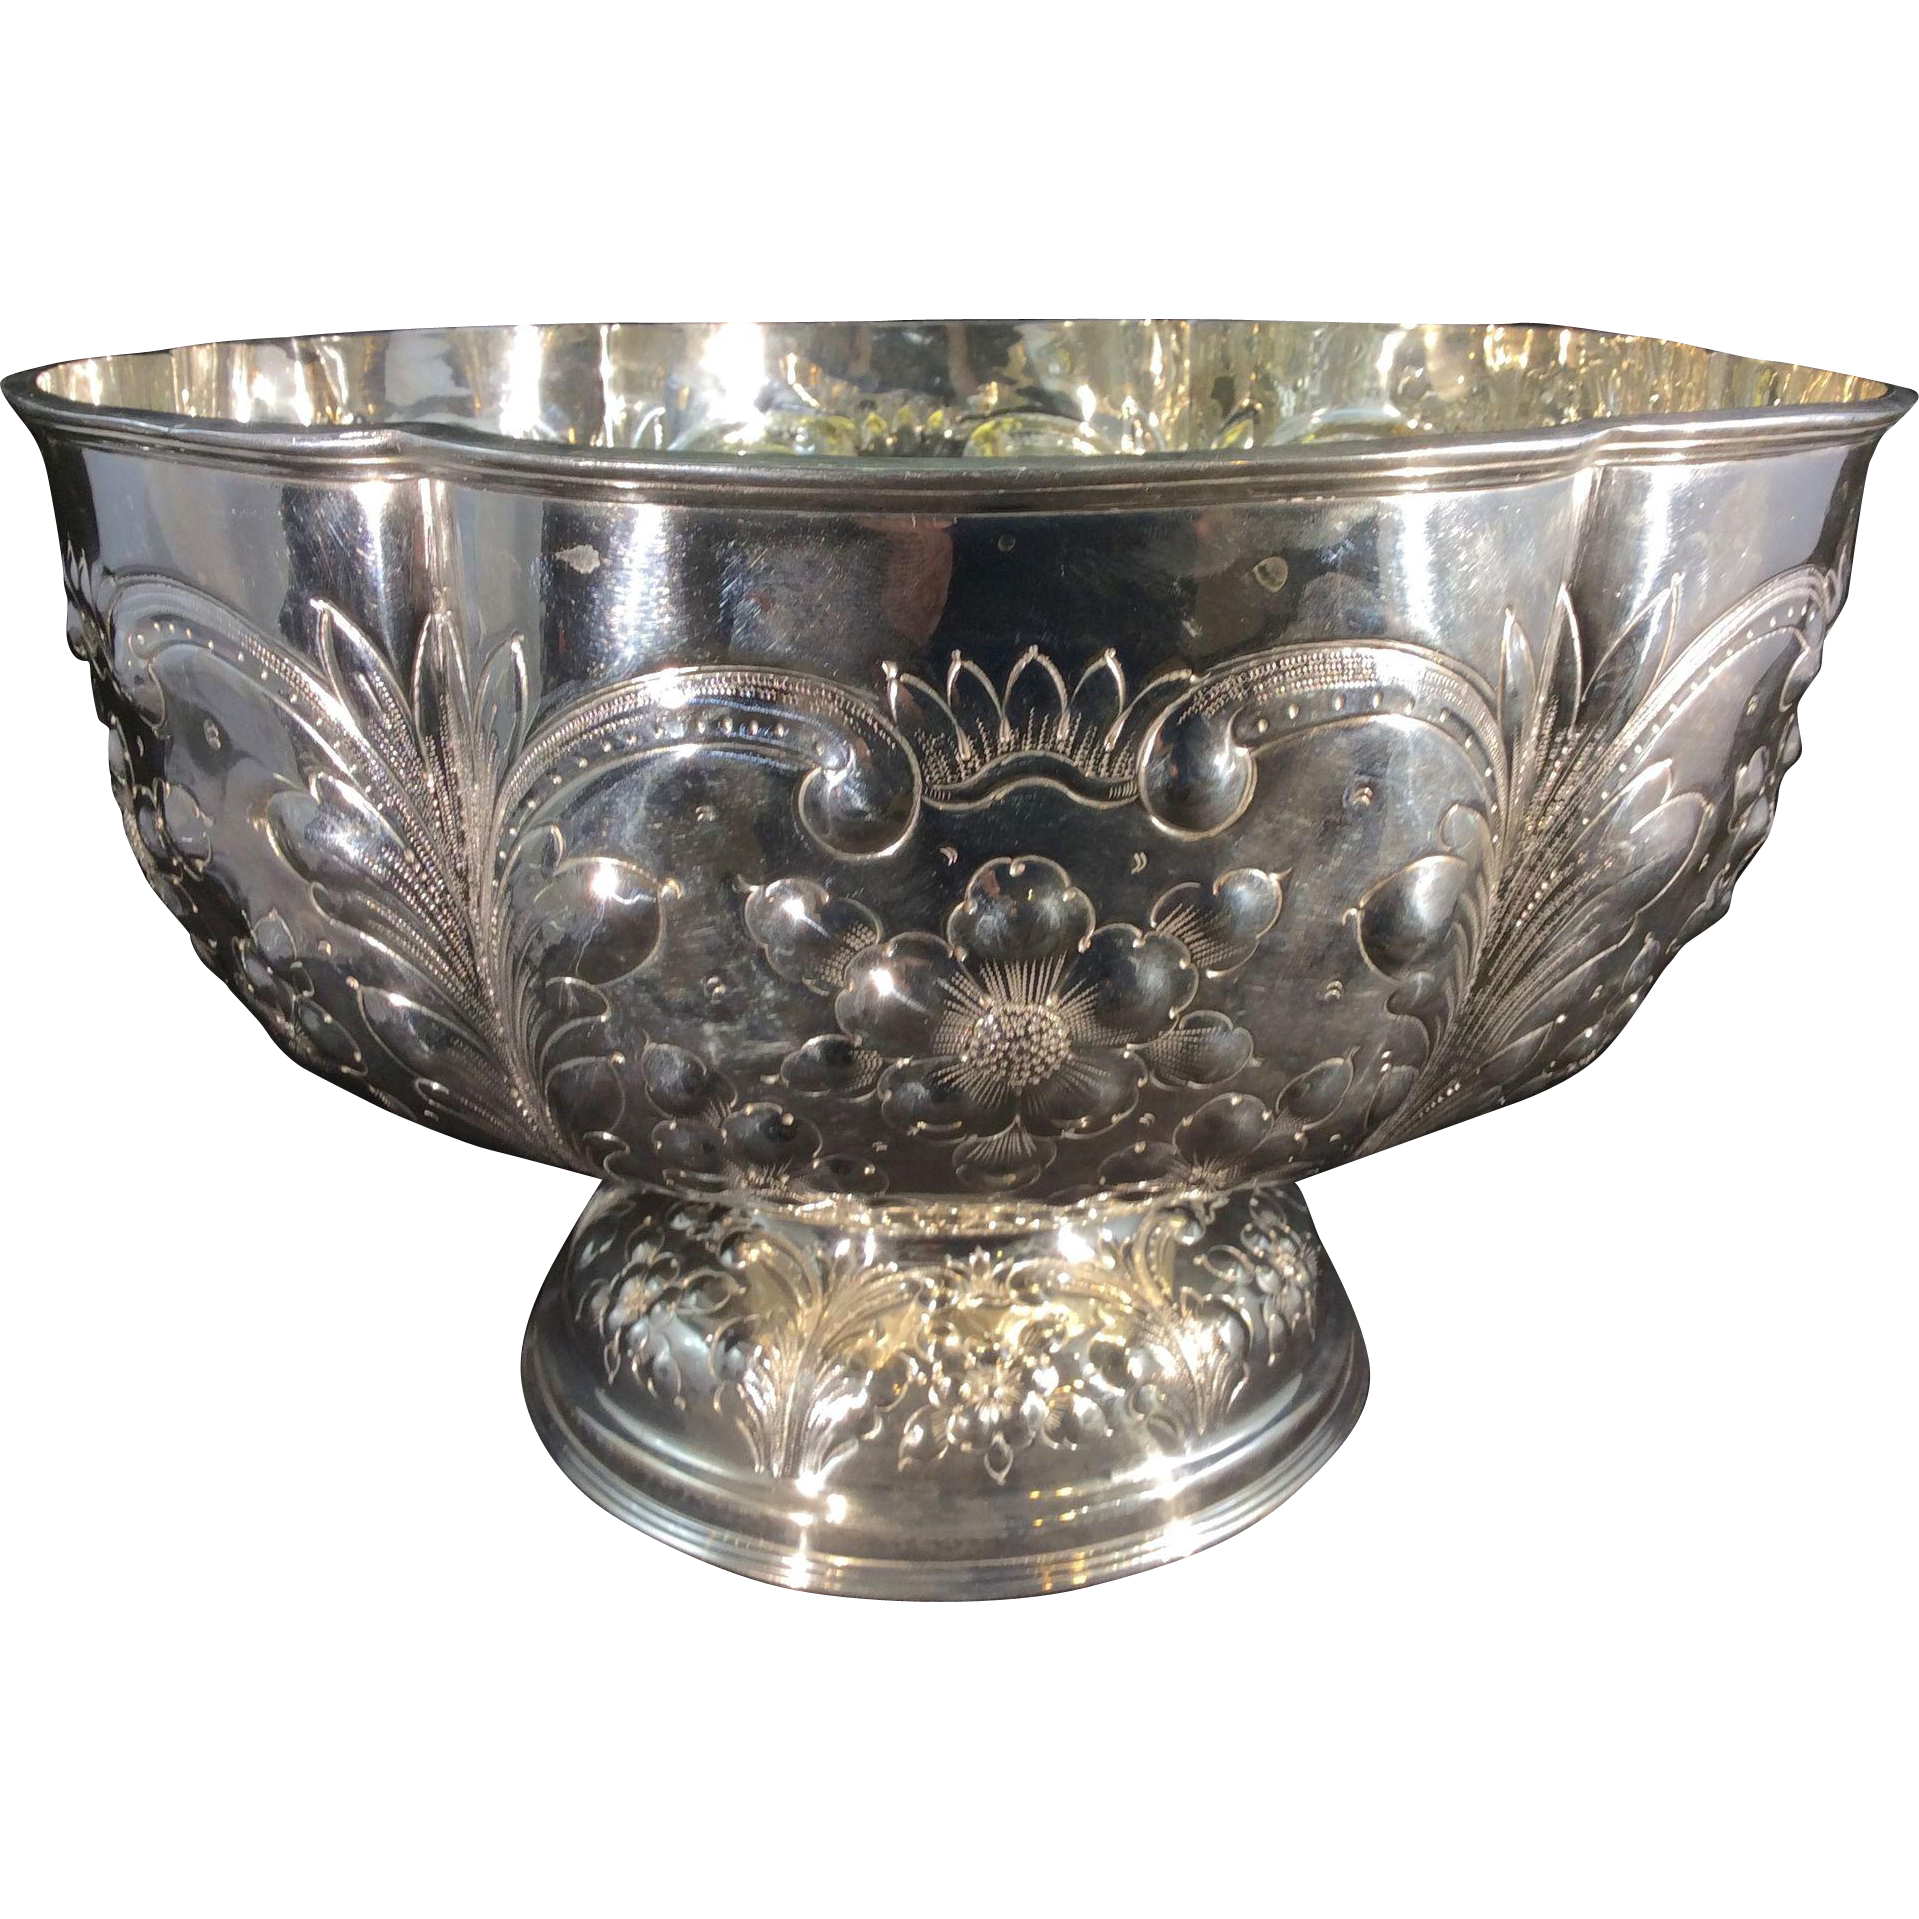 Transparent bowl silver. Old sheffield plate punch